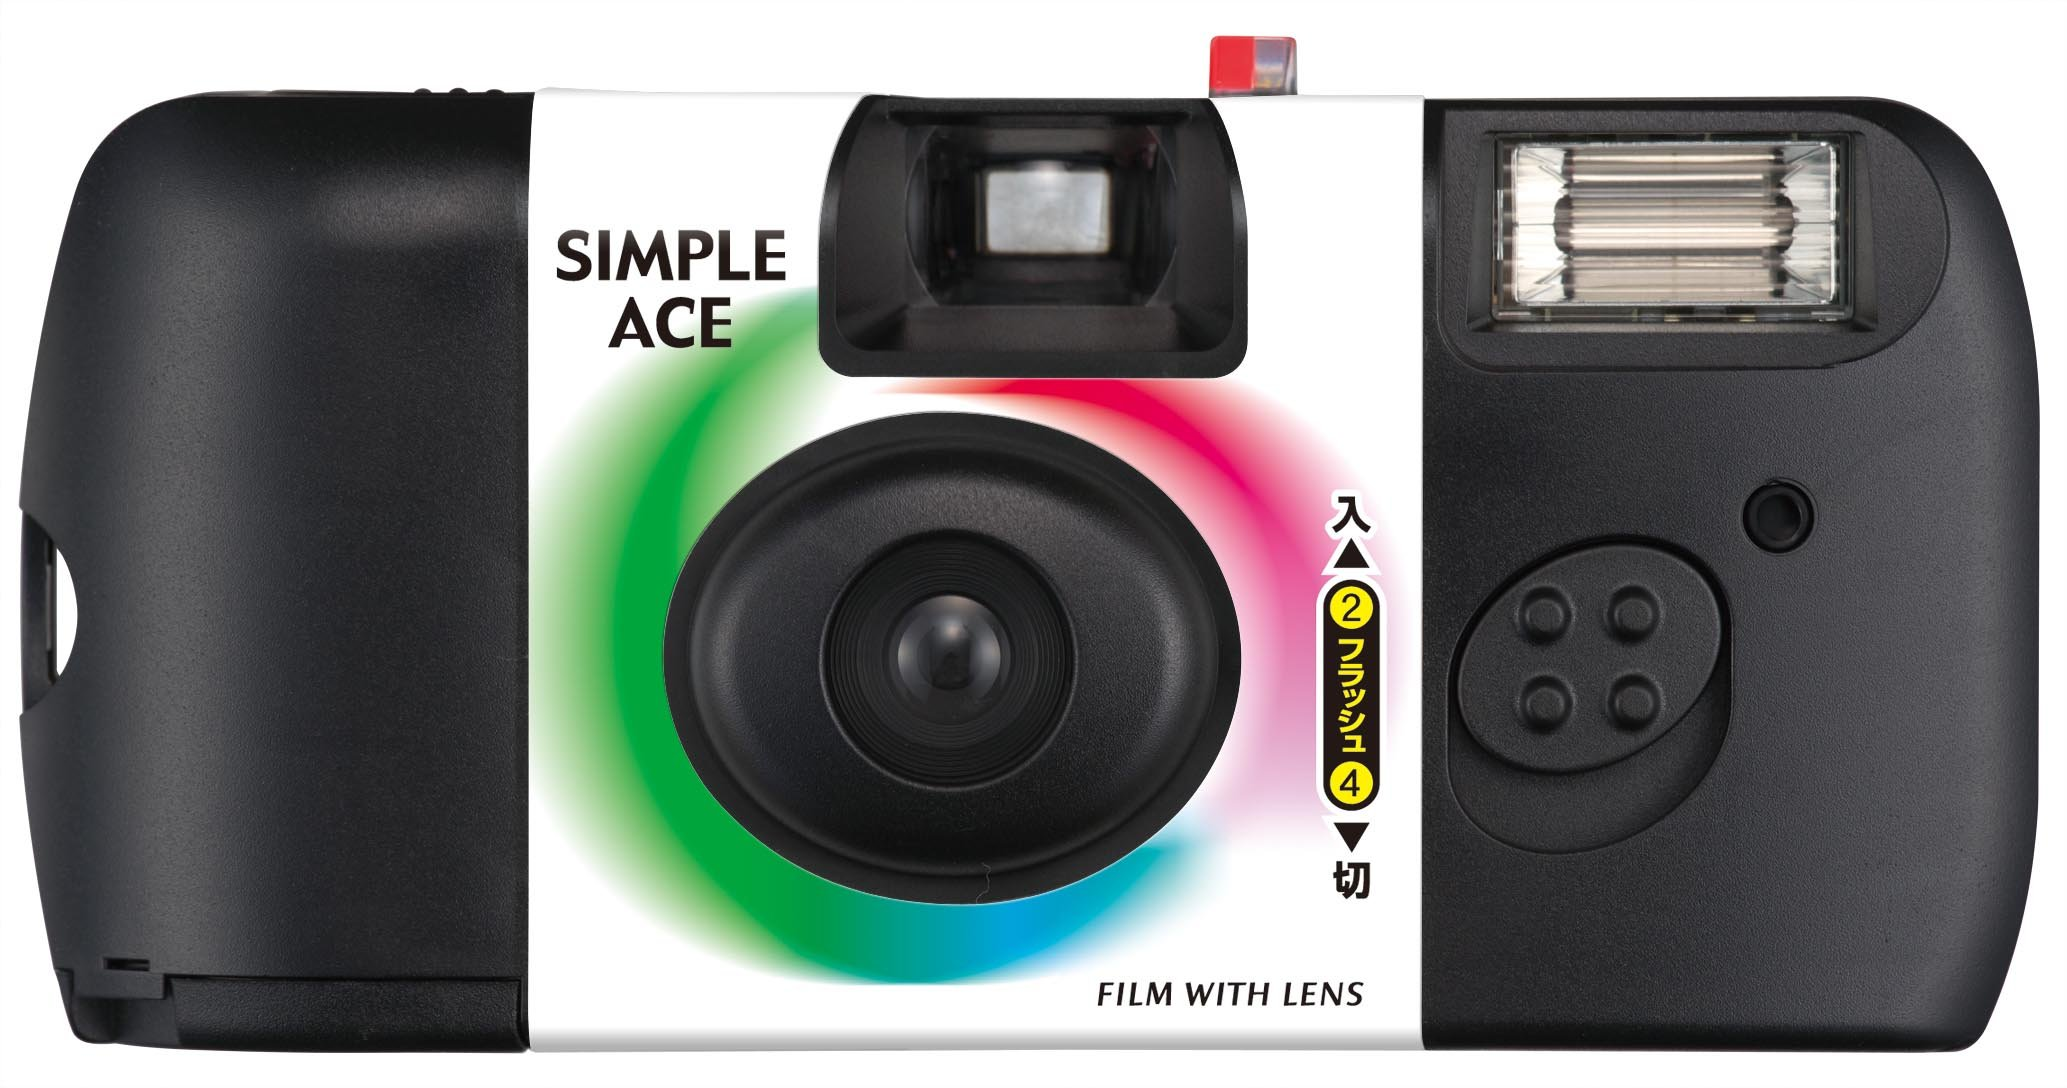 FUJIFILM film with Fujicolor lenses Photo Standard type Simple Ace 39 images taken LF S - ACE NP FL 39SH 1 by Fujifilm